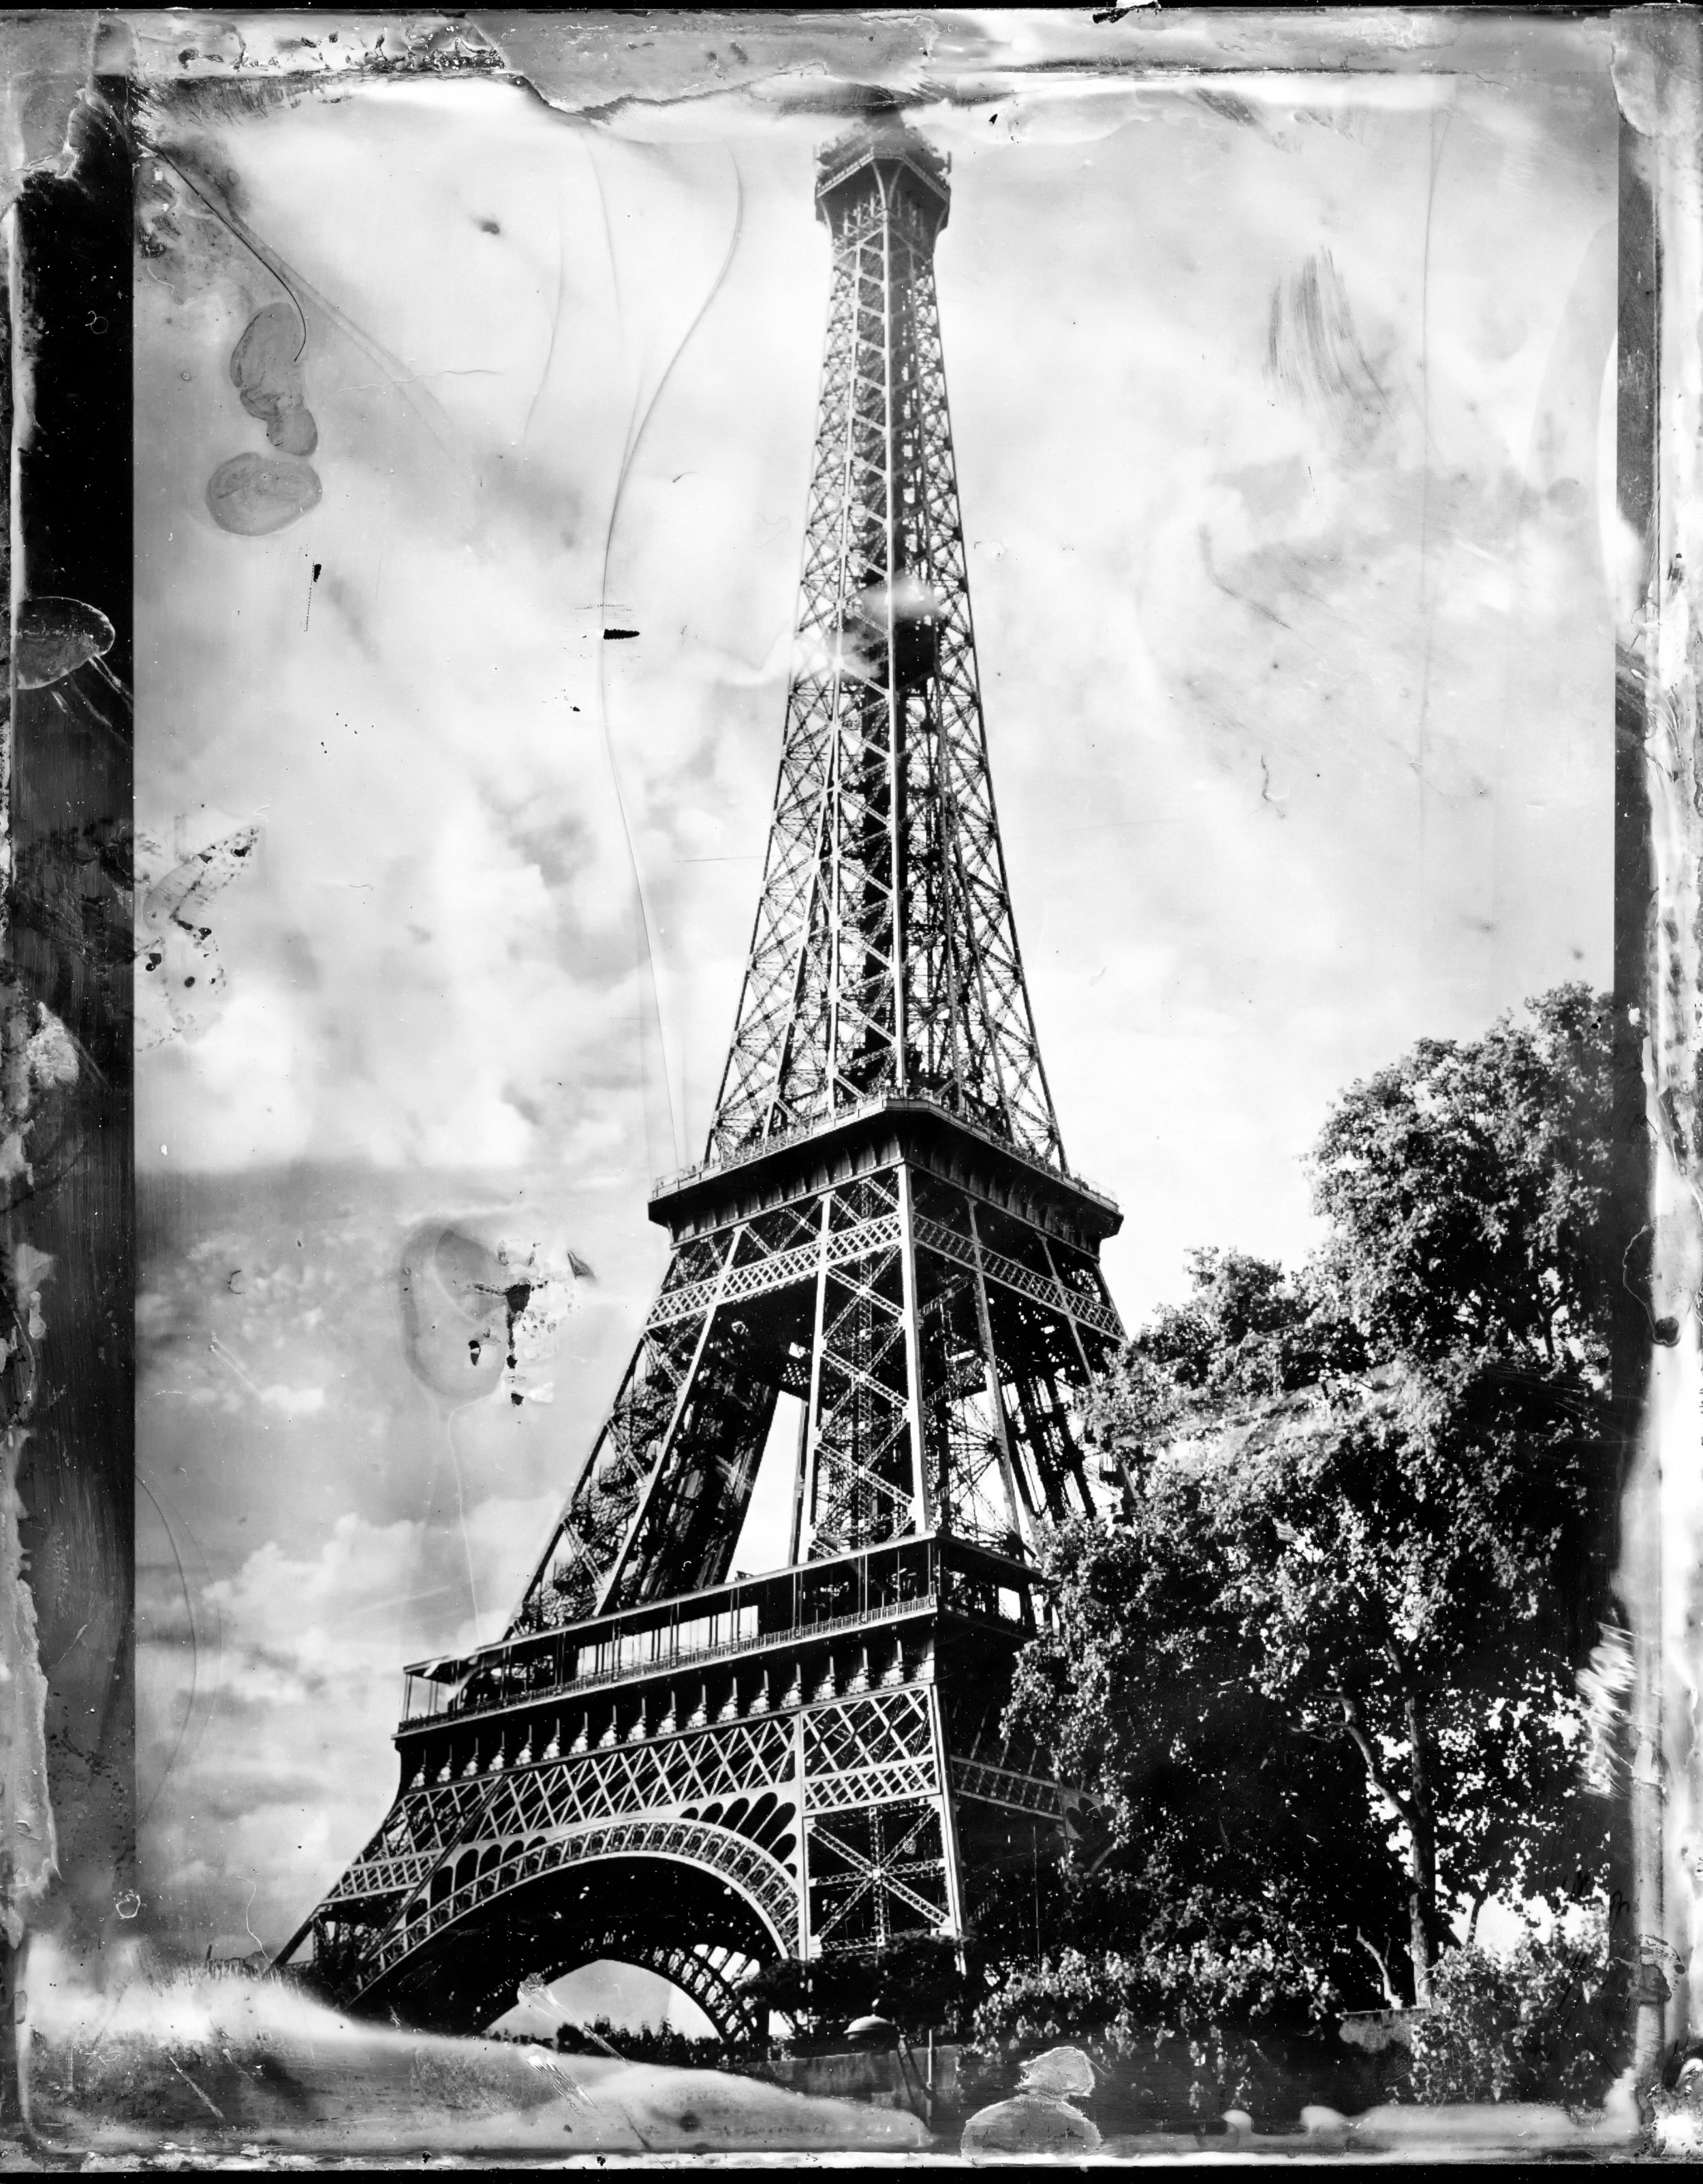 Tower | Tintype | Wetplate | Crown Graphic 4x5 | Kelly-Shane Fuller